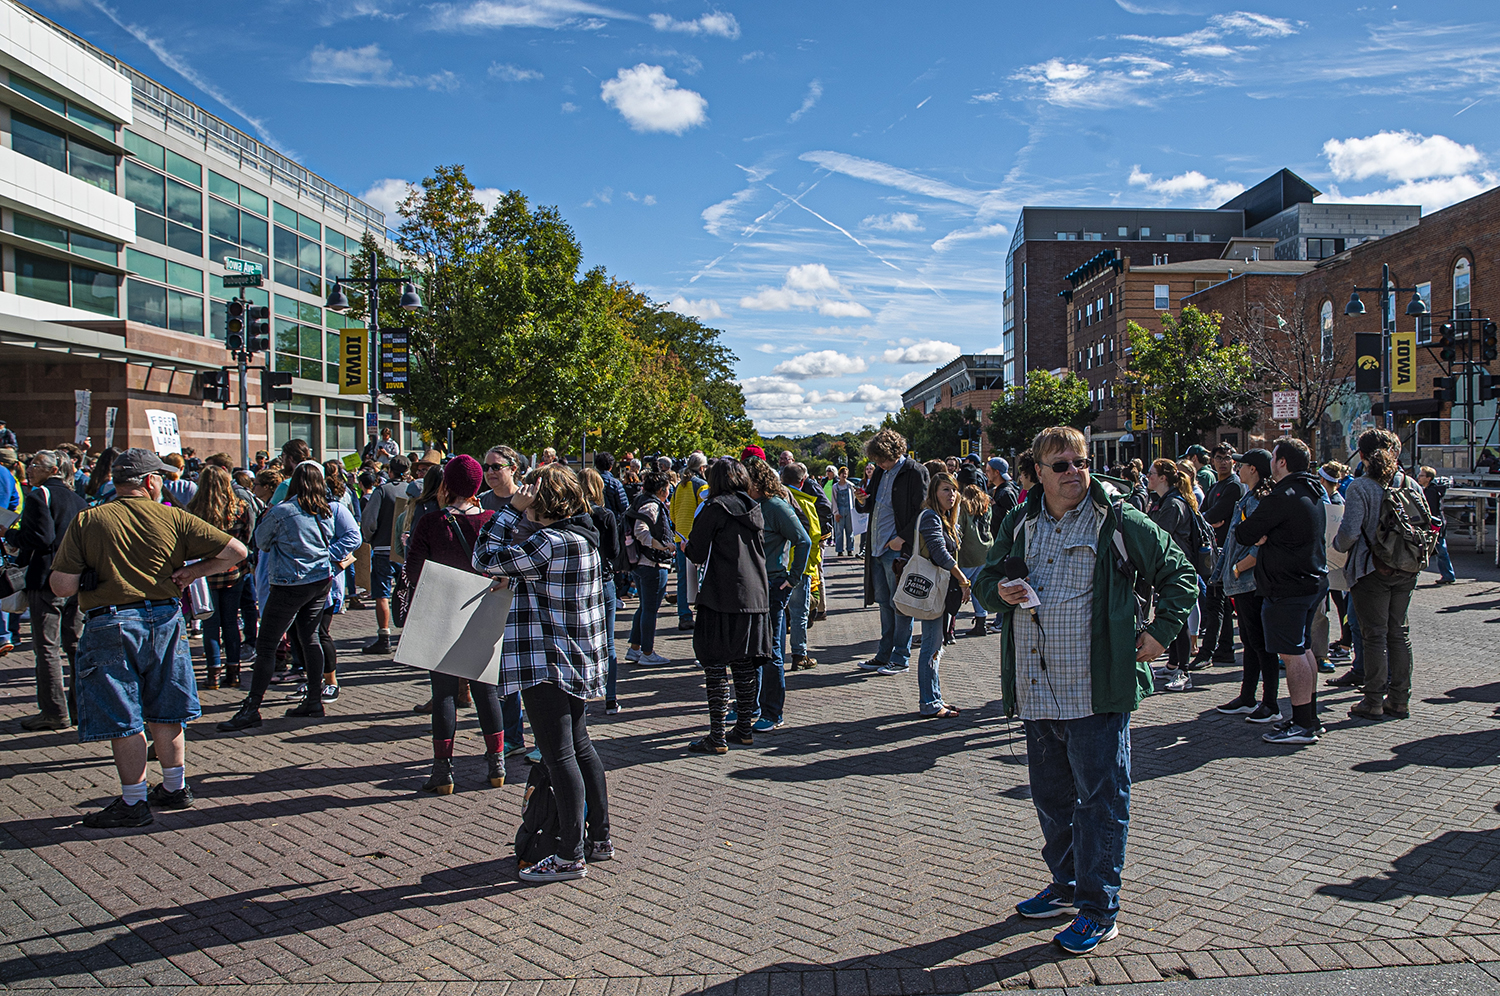 Iowa City citizens gather downtown to listen to Greta Thunberg speak on Friday, October4th, 2019. Greta Thumberg is a teenage climate change activist speaking at a local climate strike.